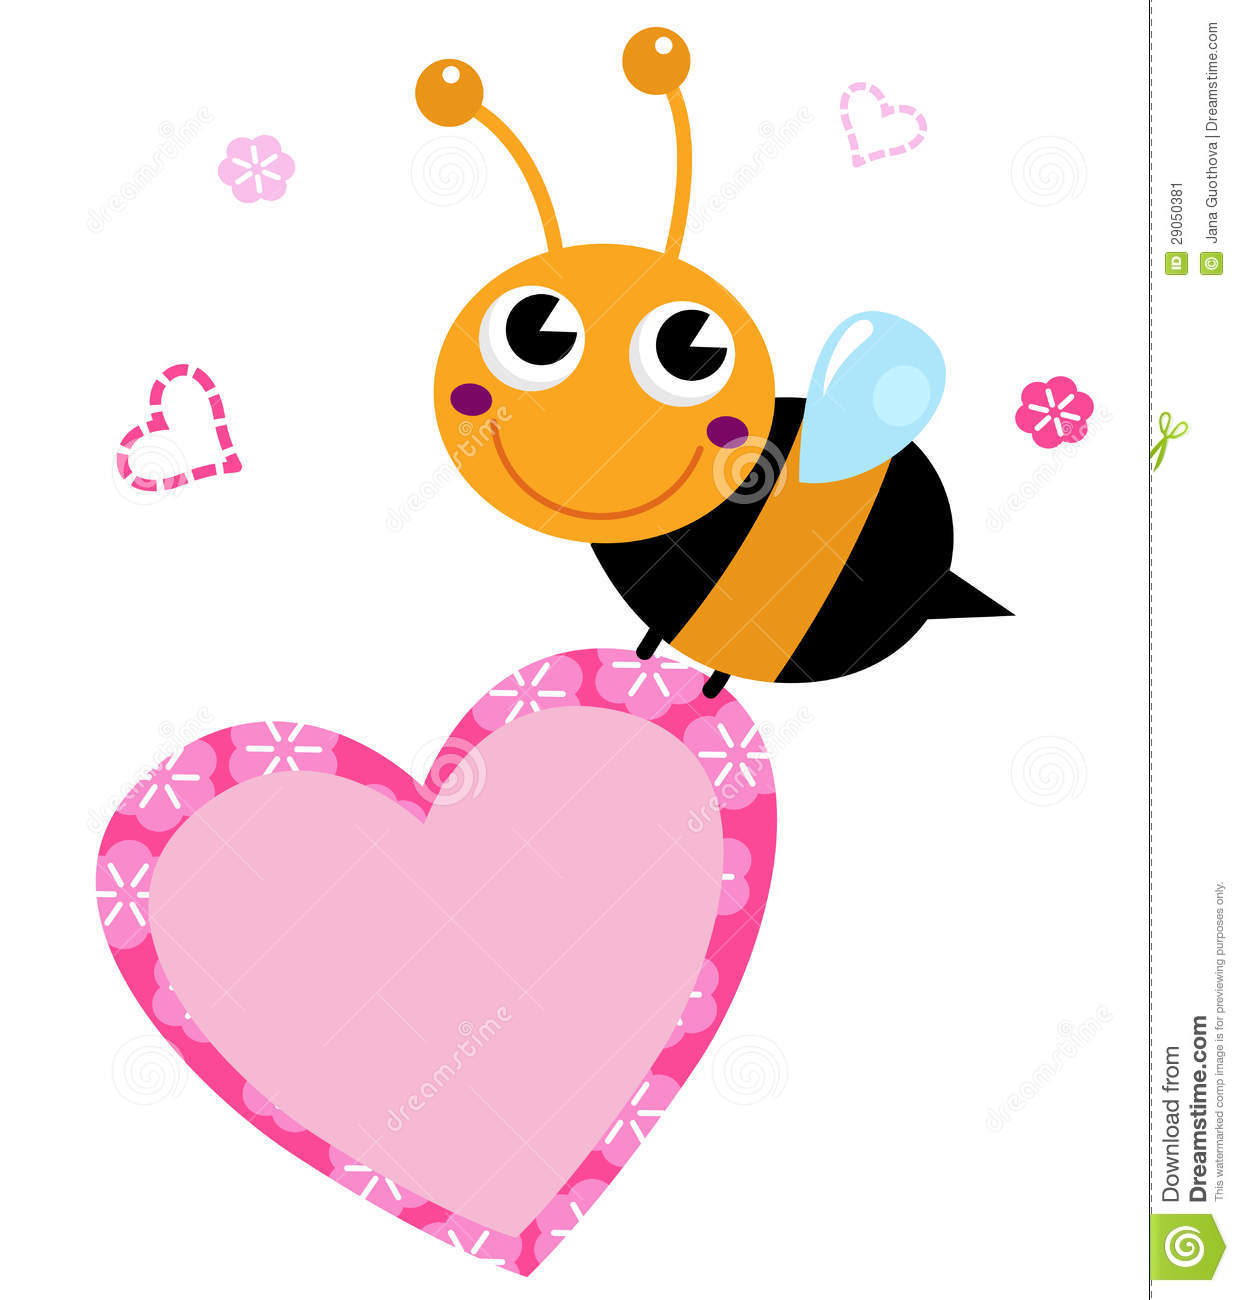 Cute Flying Bee Holding Pink Heart Stock Image